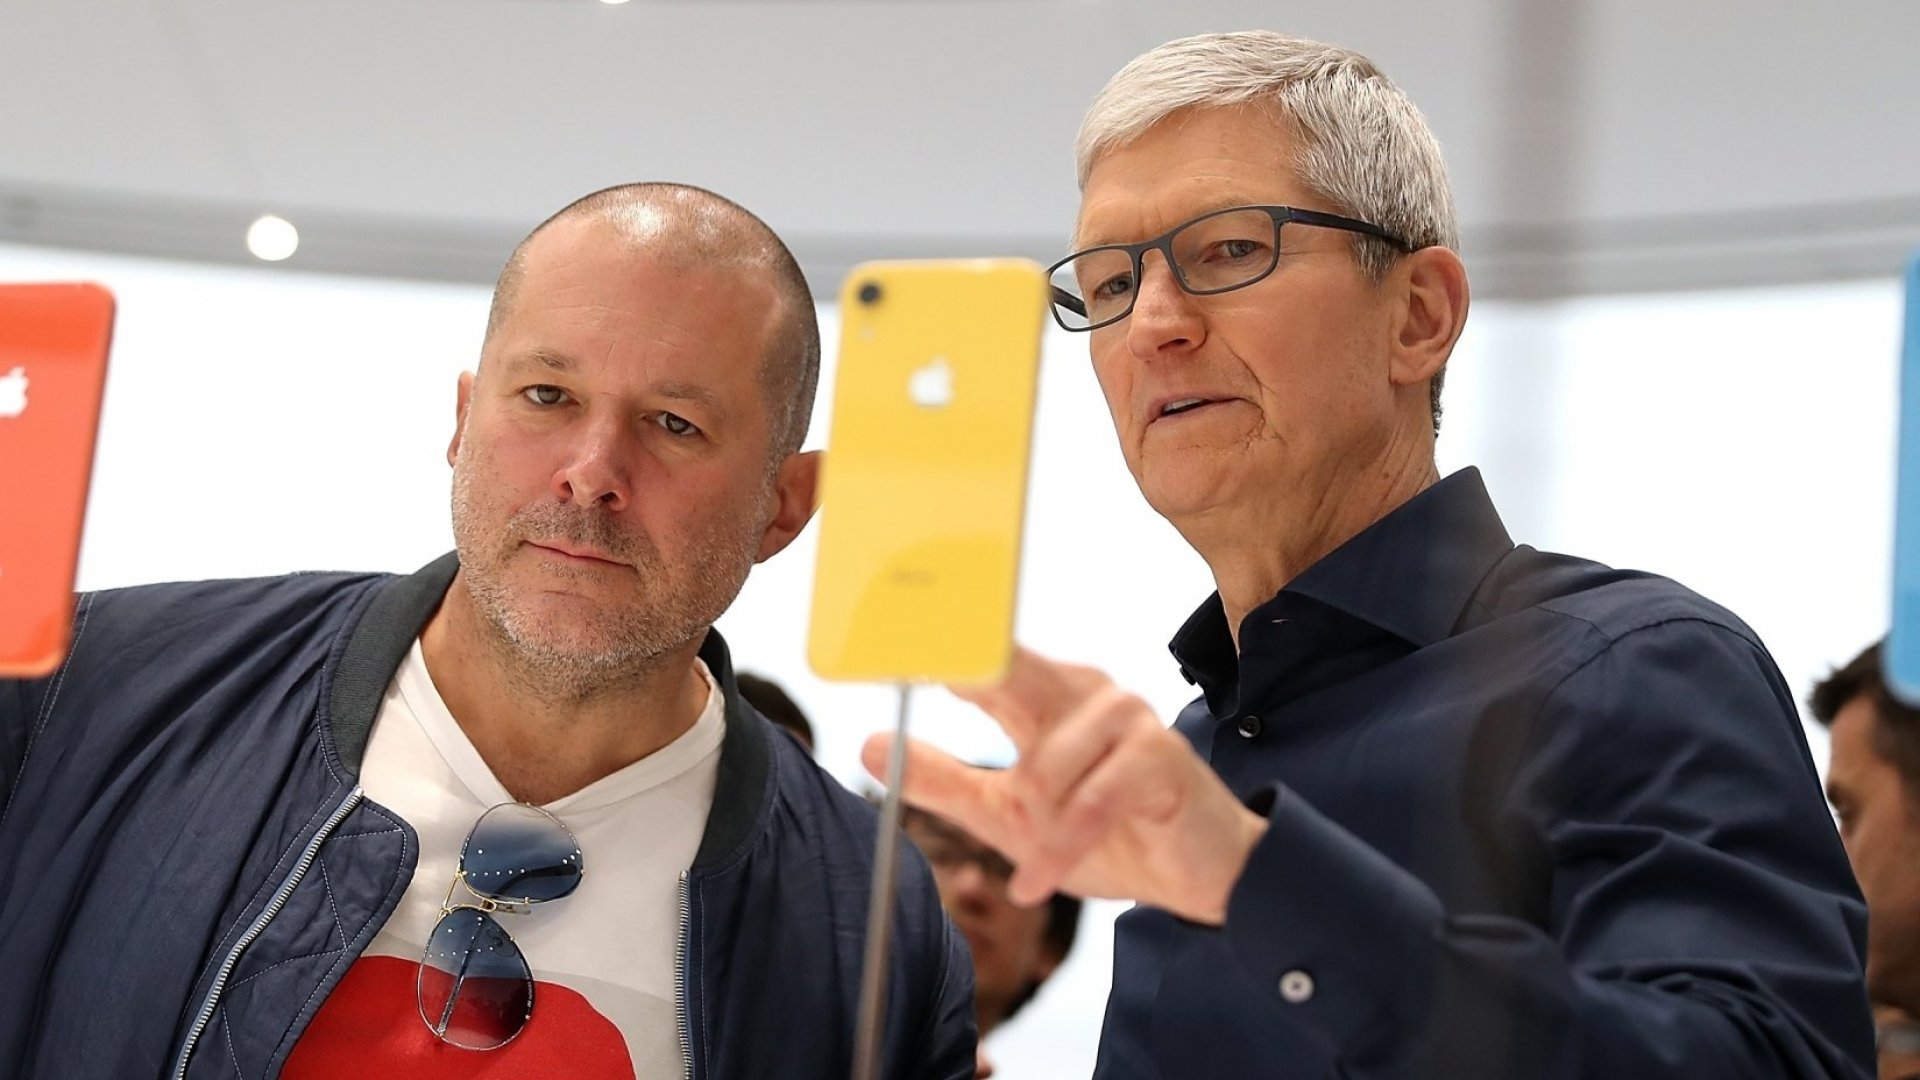 Jony Ive Left Apple After Inattention From Tim Cook, Report Says